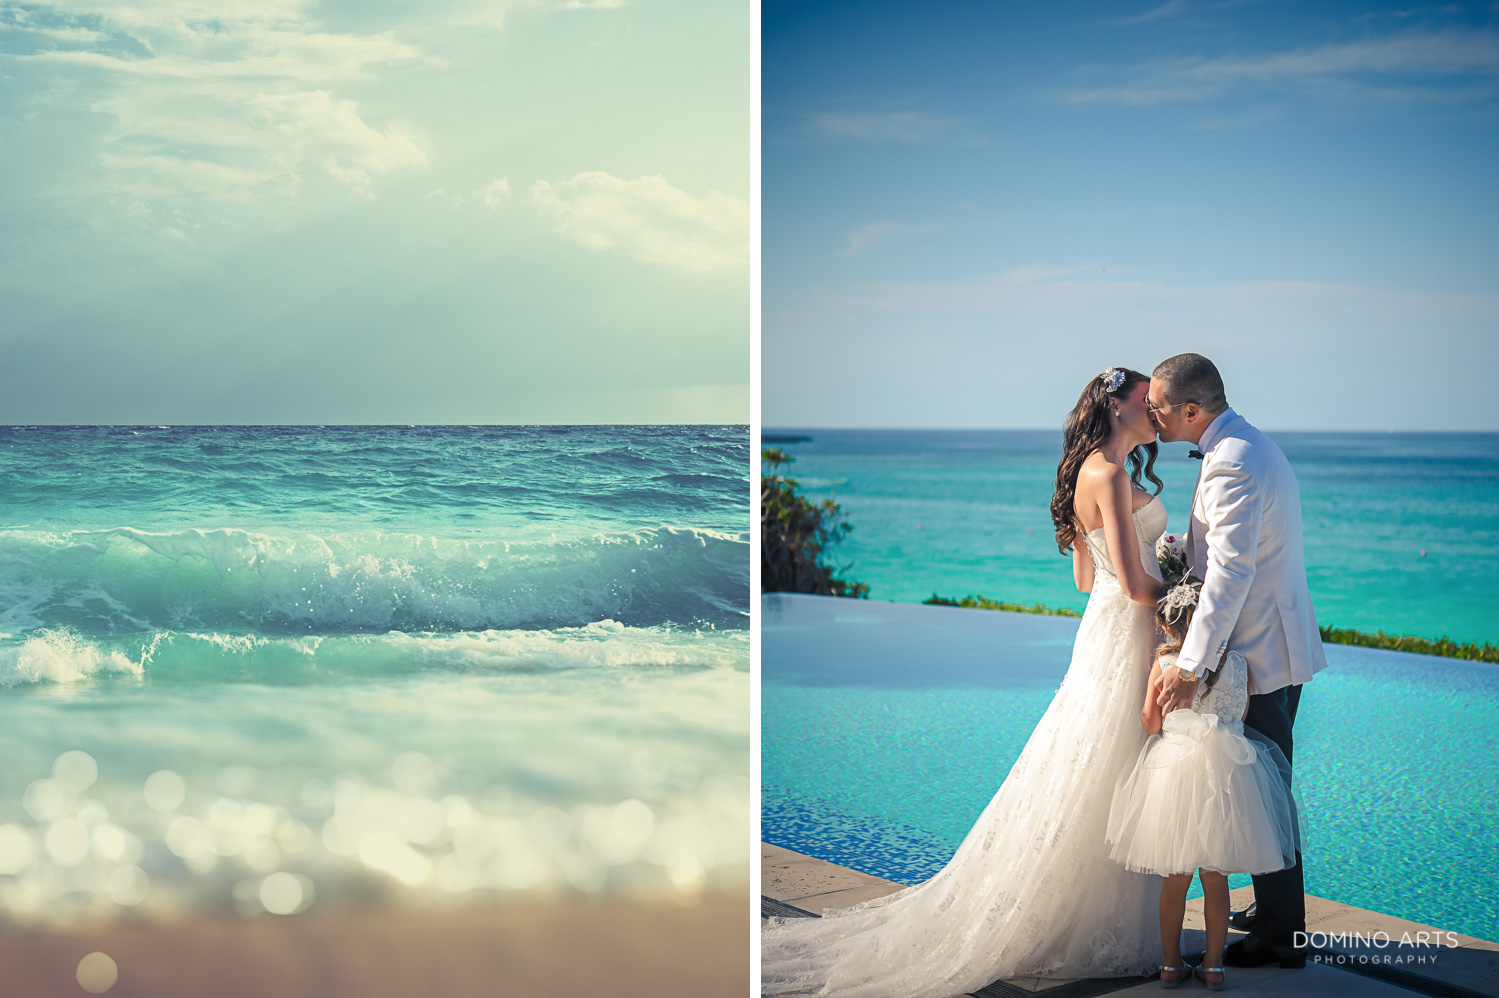 First look of bride and groom pictures at One&Only Ocean Club Bahamas